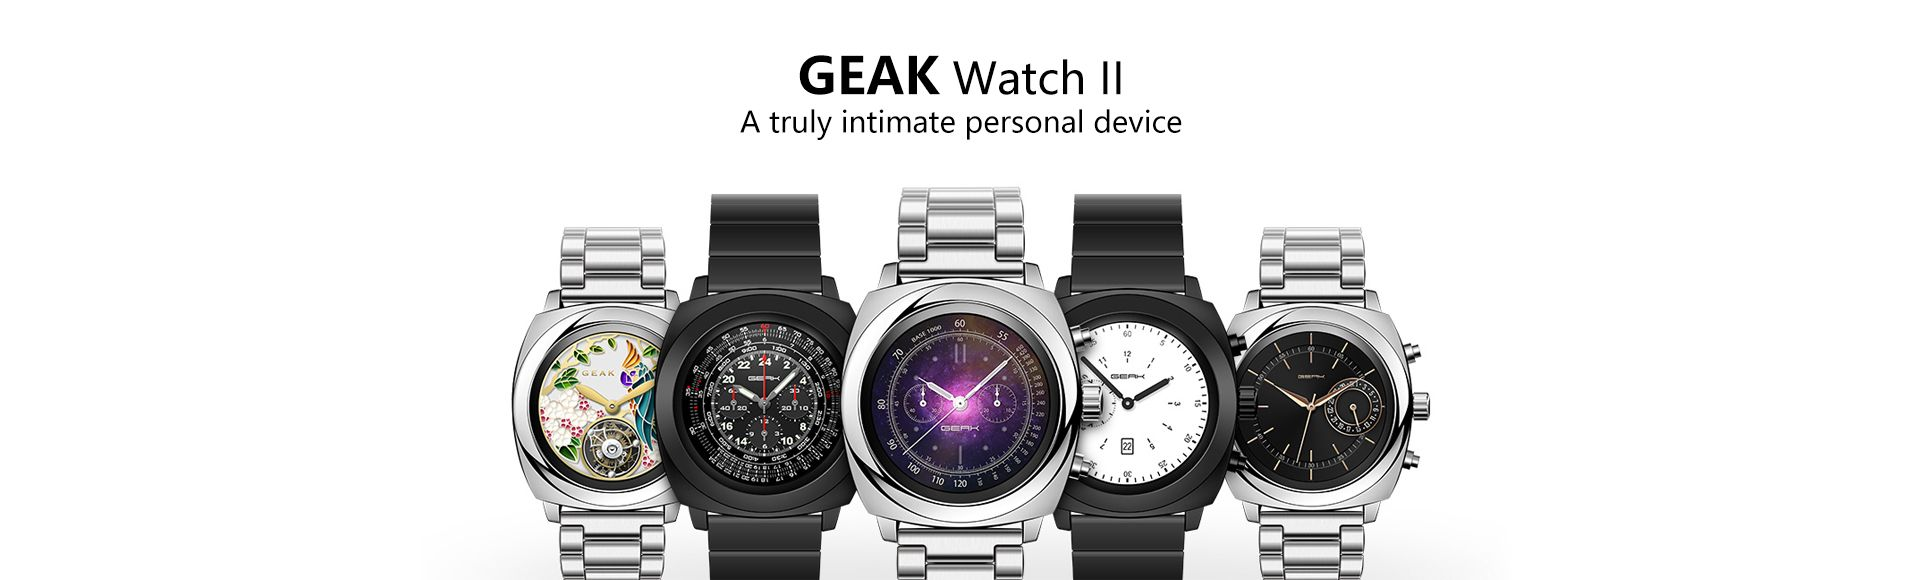 Geak Watch II - A truly intimate personal device